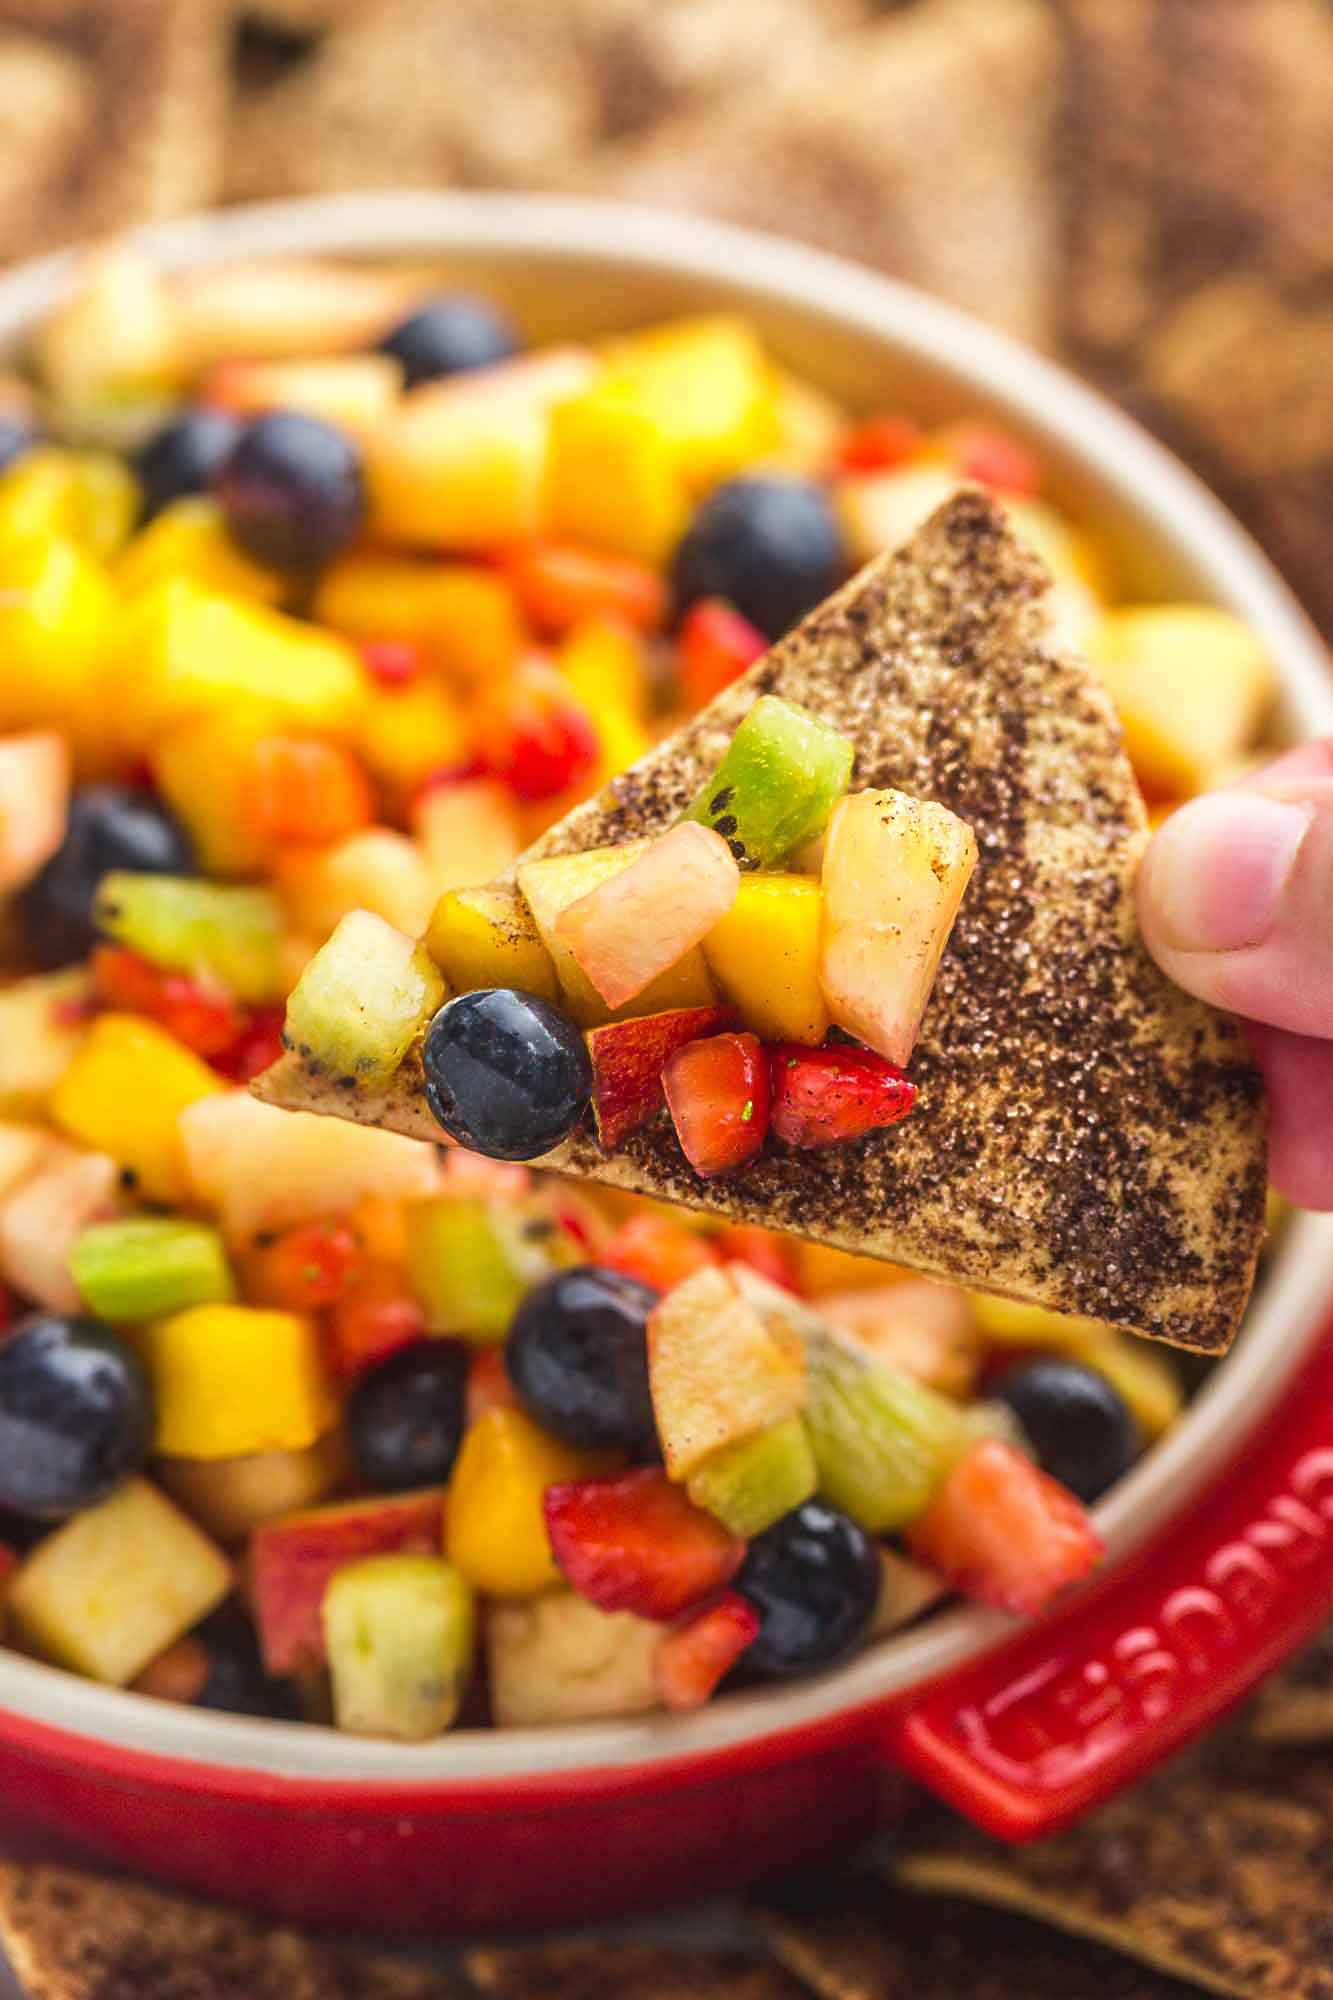 Fruit salsa served in a red Le Creuset dish, with crunchy cinnamon chips on the sides